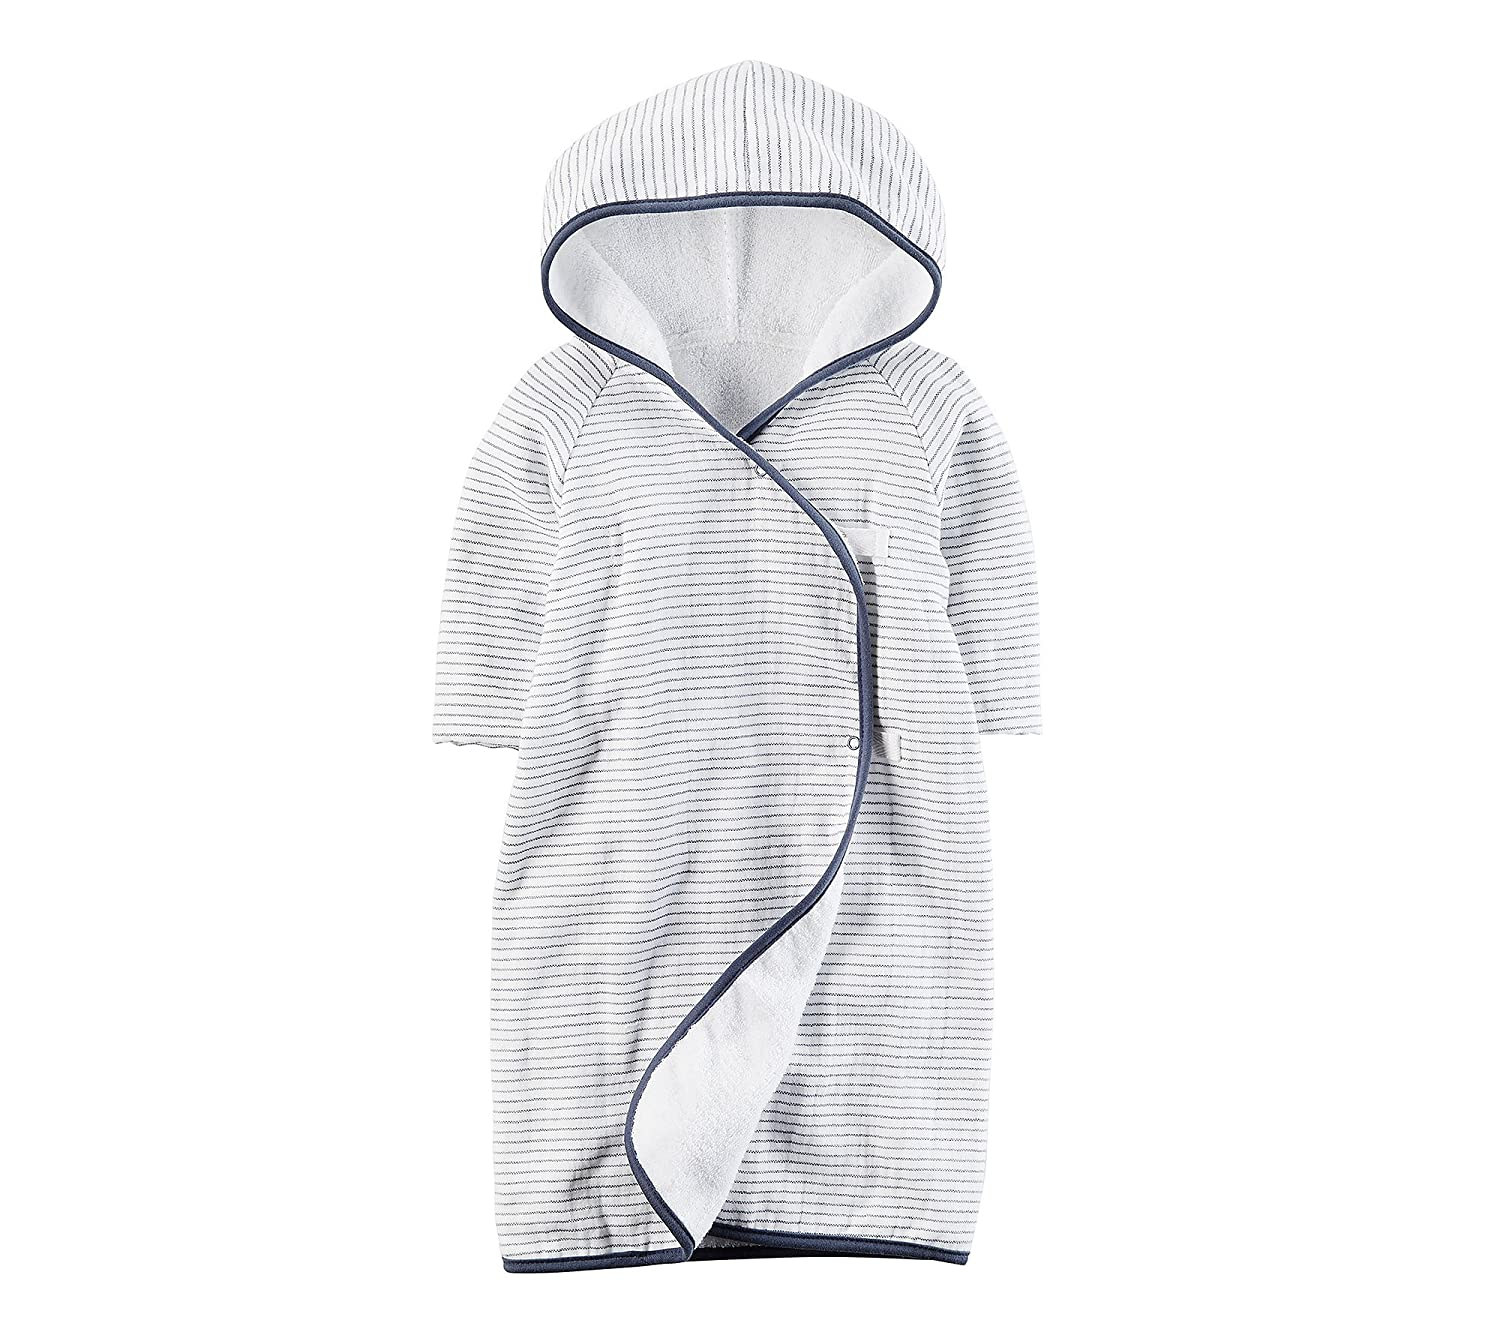 Carter's Baby Boys' Robe 126G883